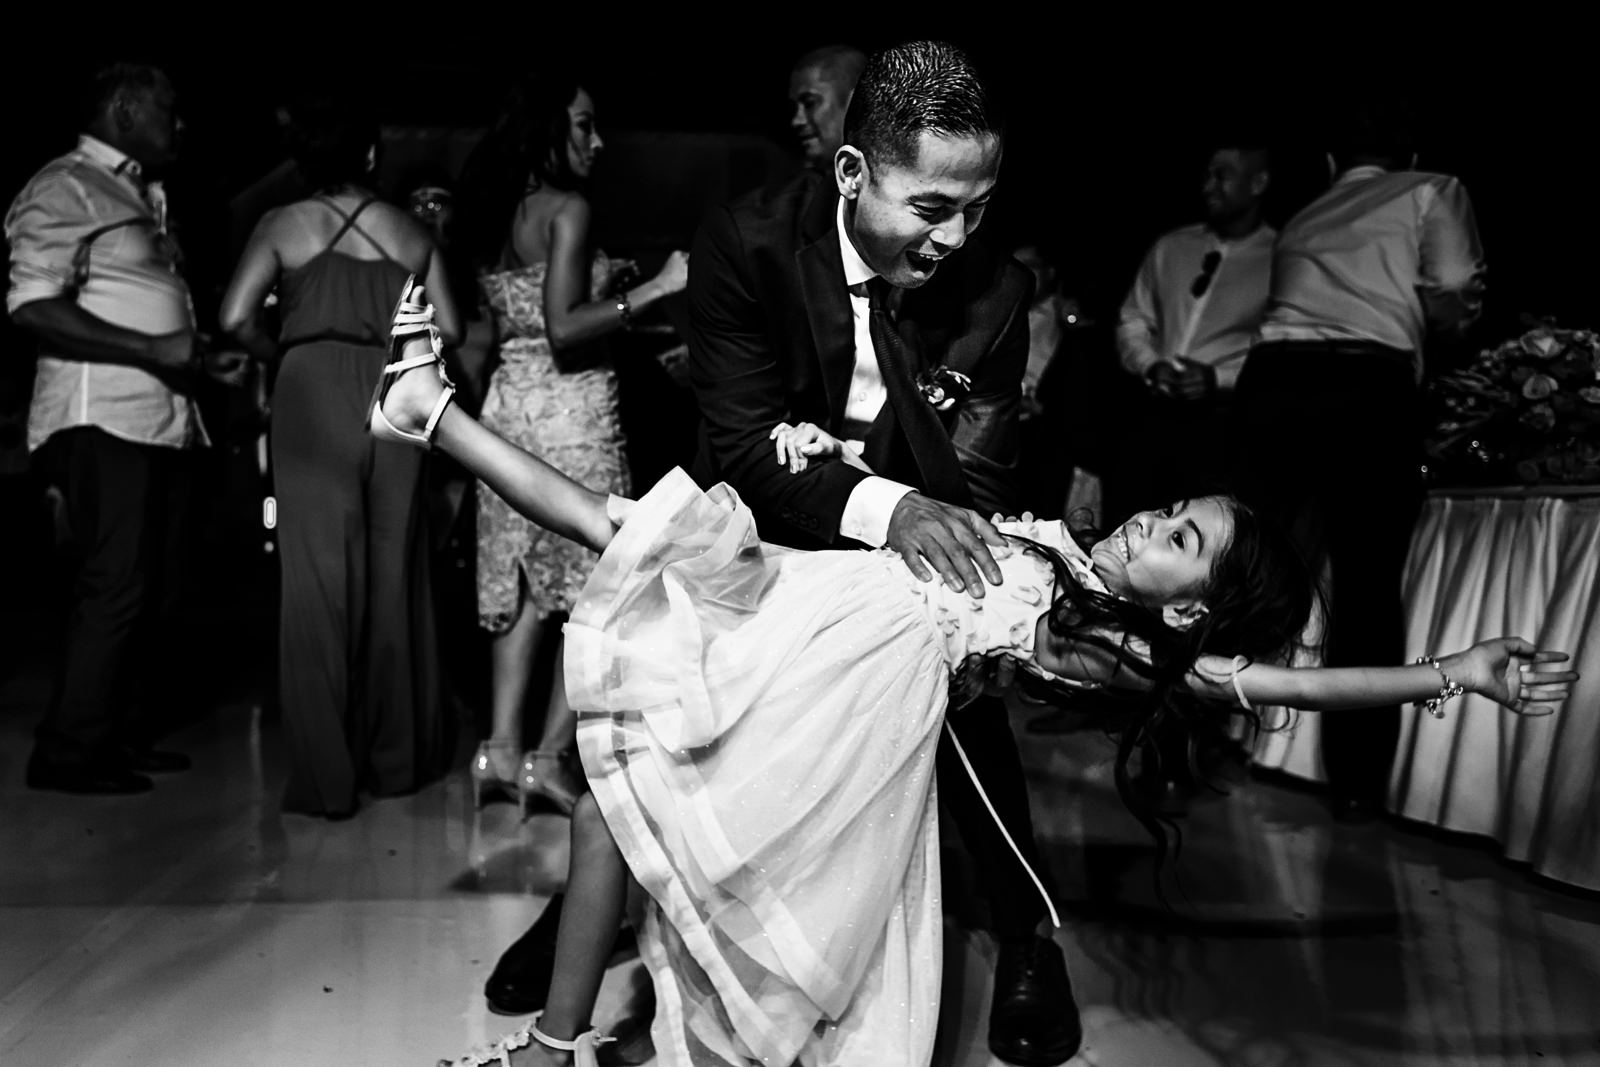 Groom dancing and leaning his daughter at the dance floor